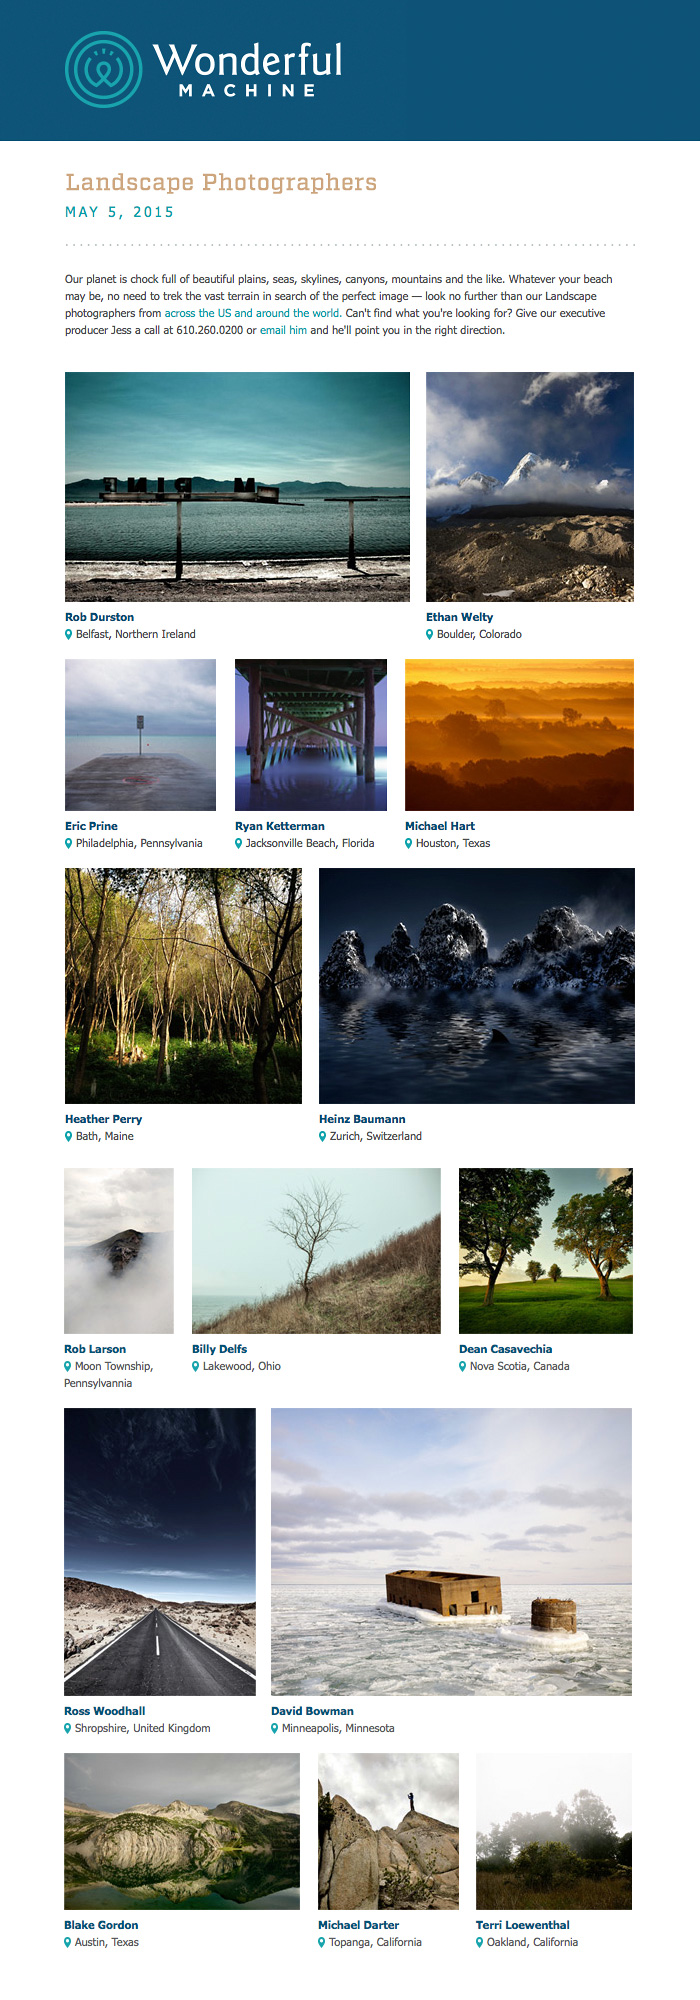 Landscape Photographers featured by Wonderful Machine